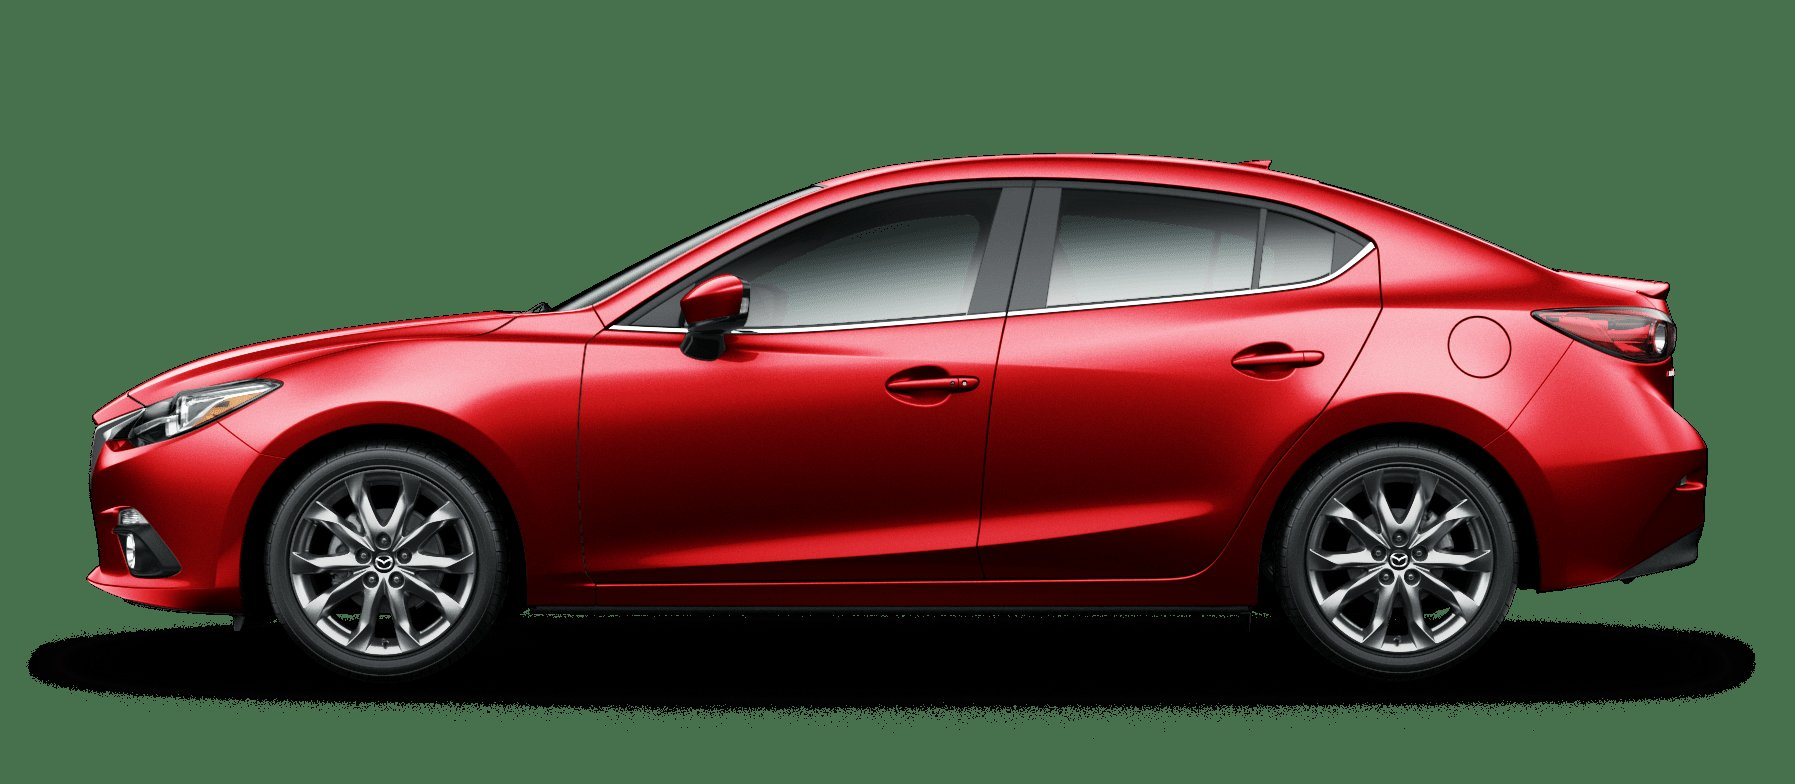 Latest Mazda3 Gallery Free Download